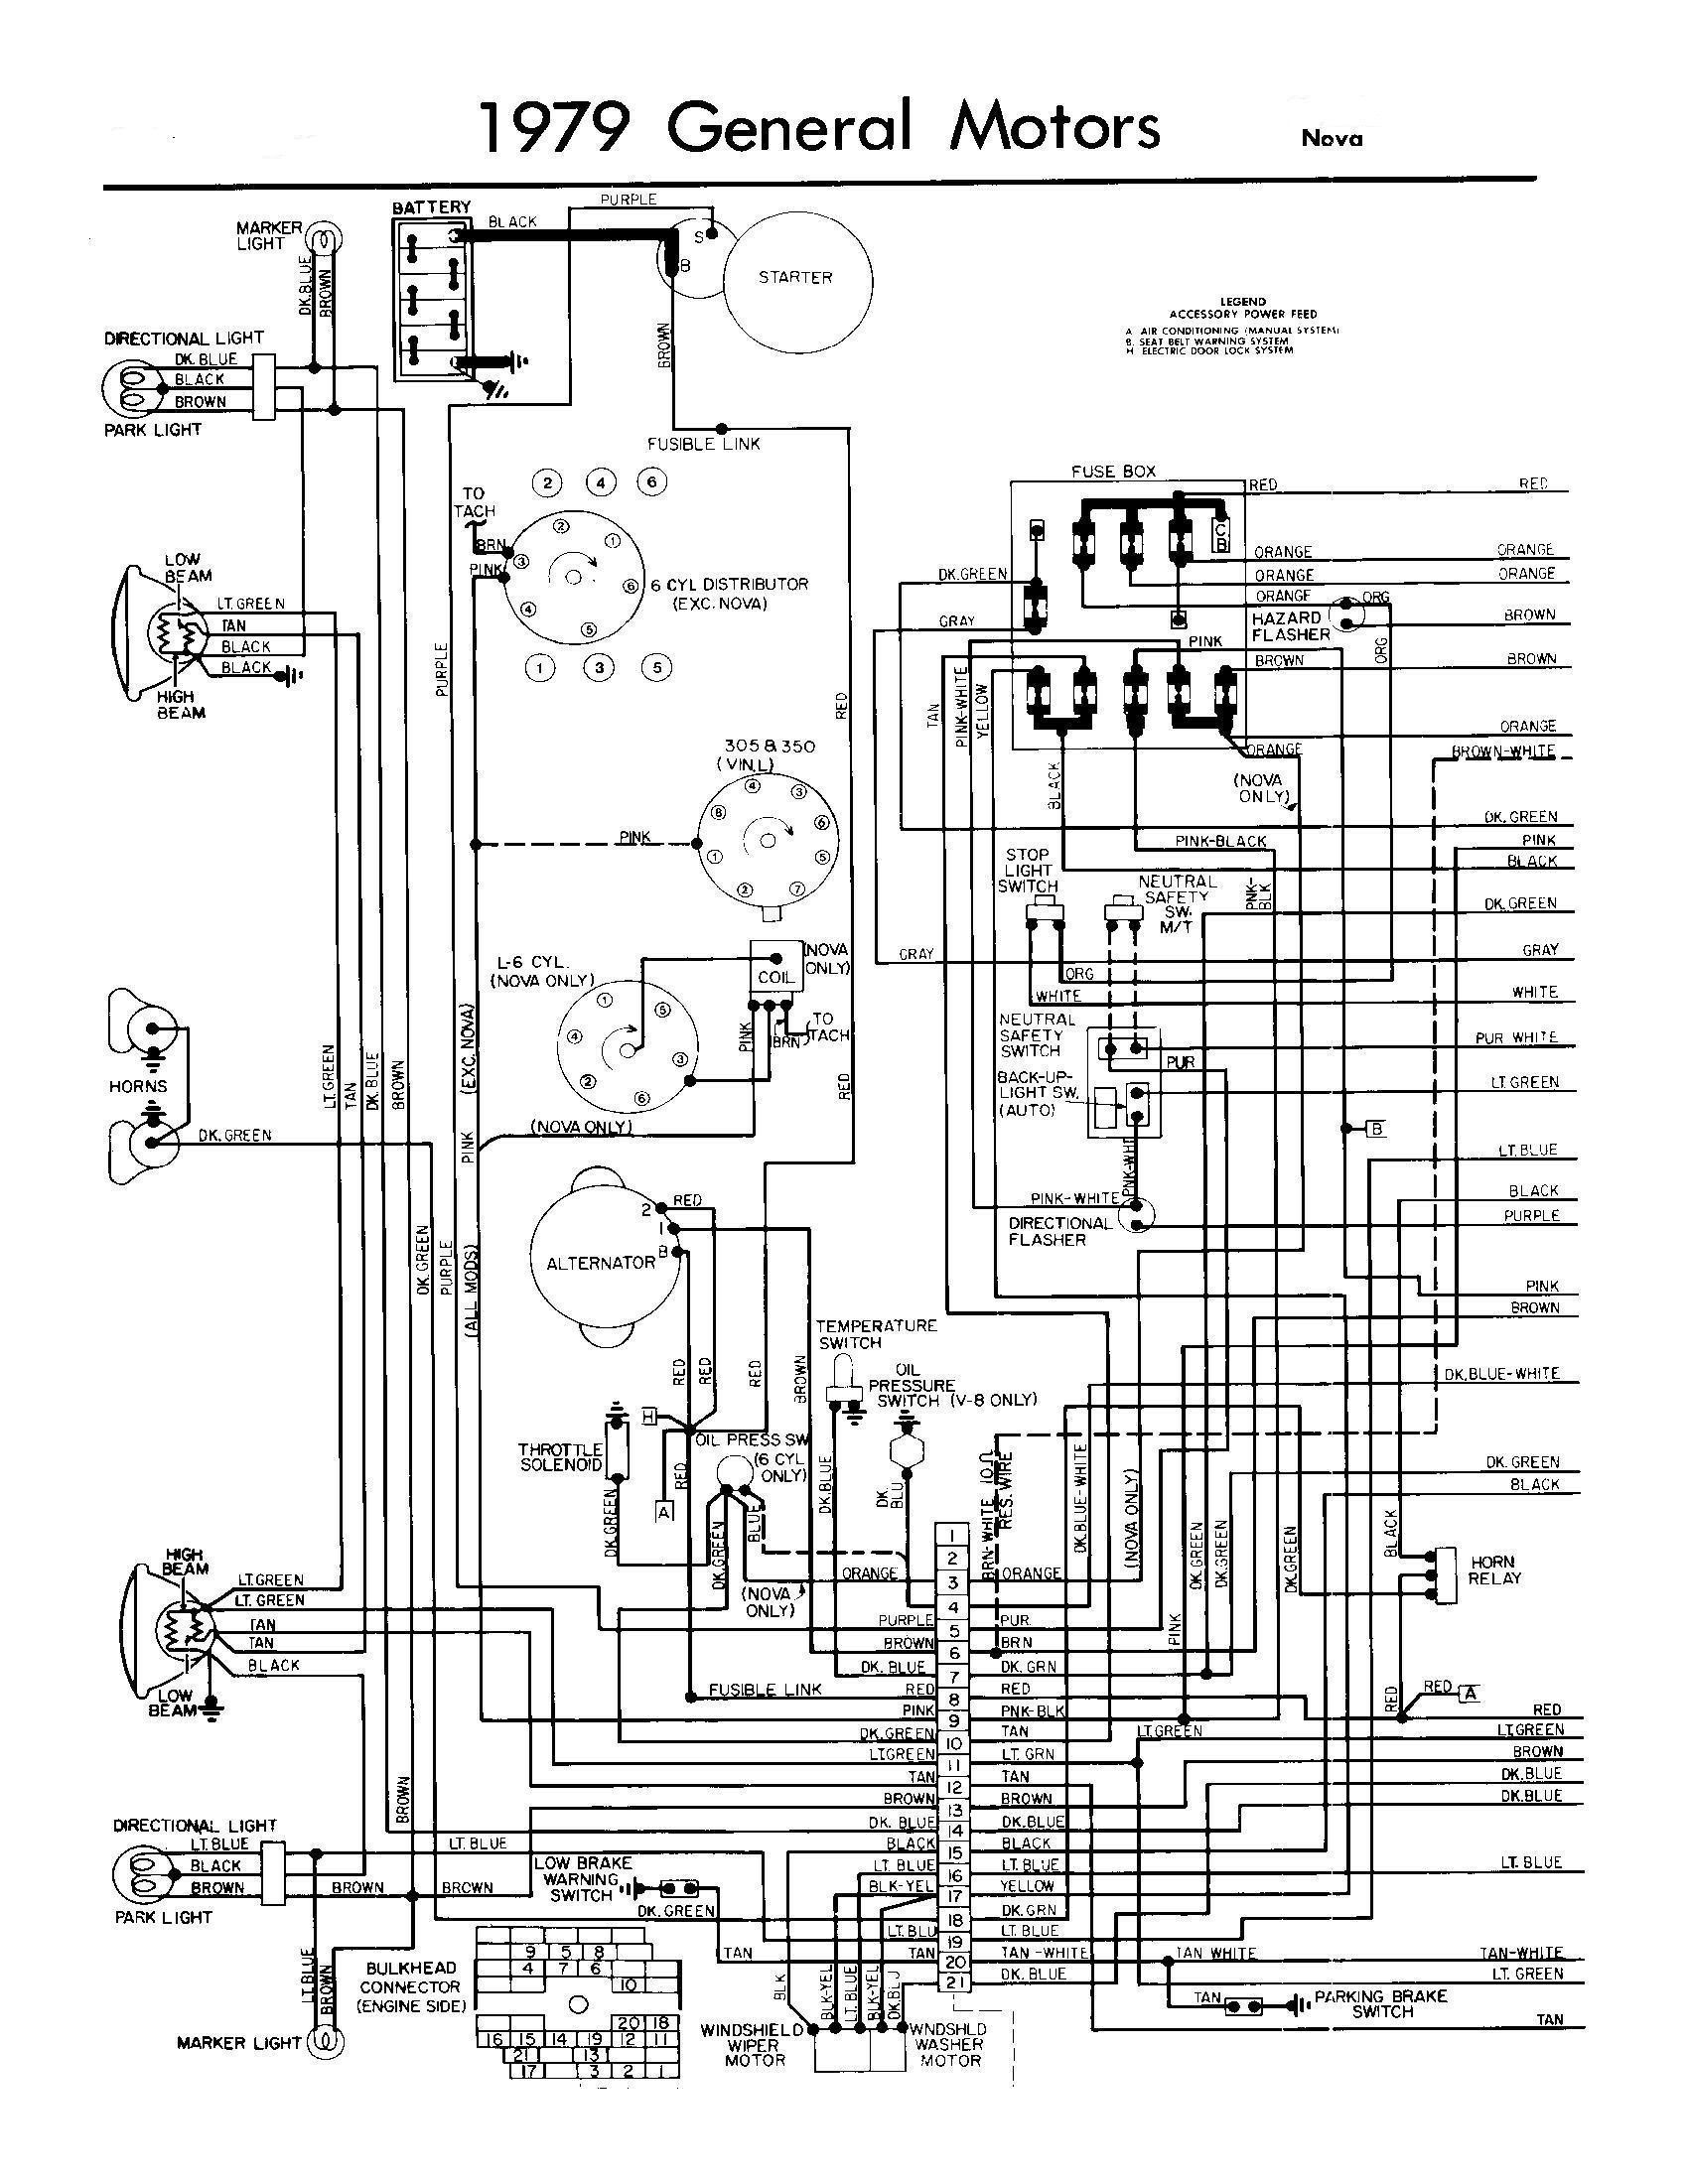 1985 silverado dash wiring plug diagram schematic wiring diagram Chevy Blazer Wiring Diagram